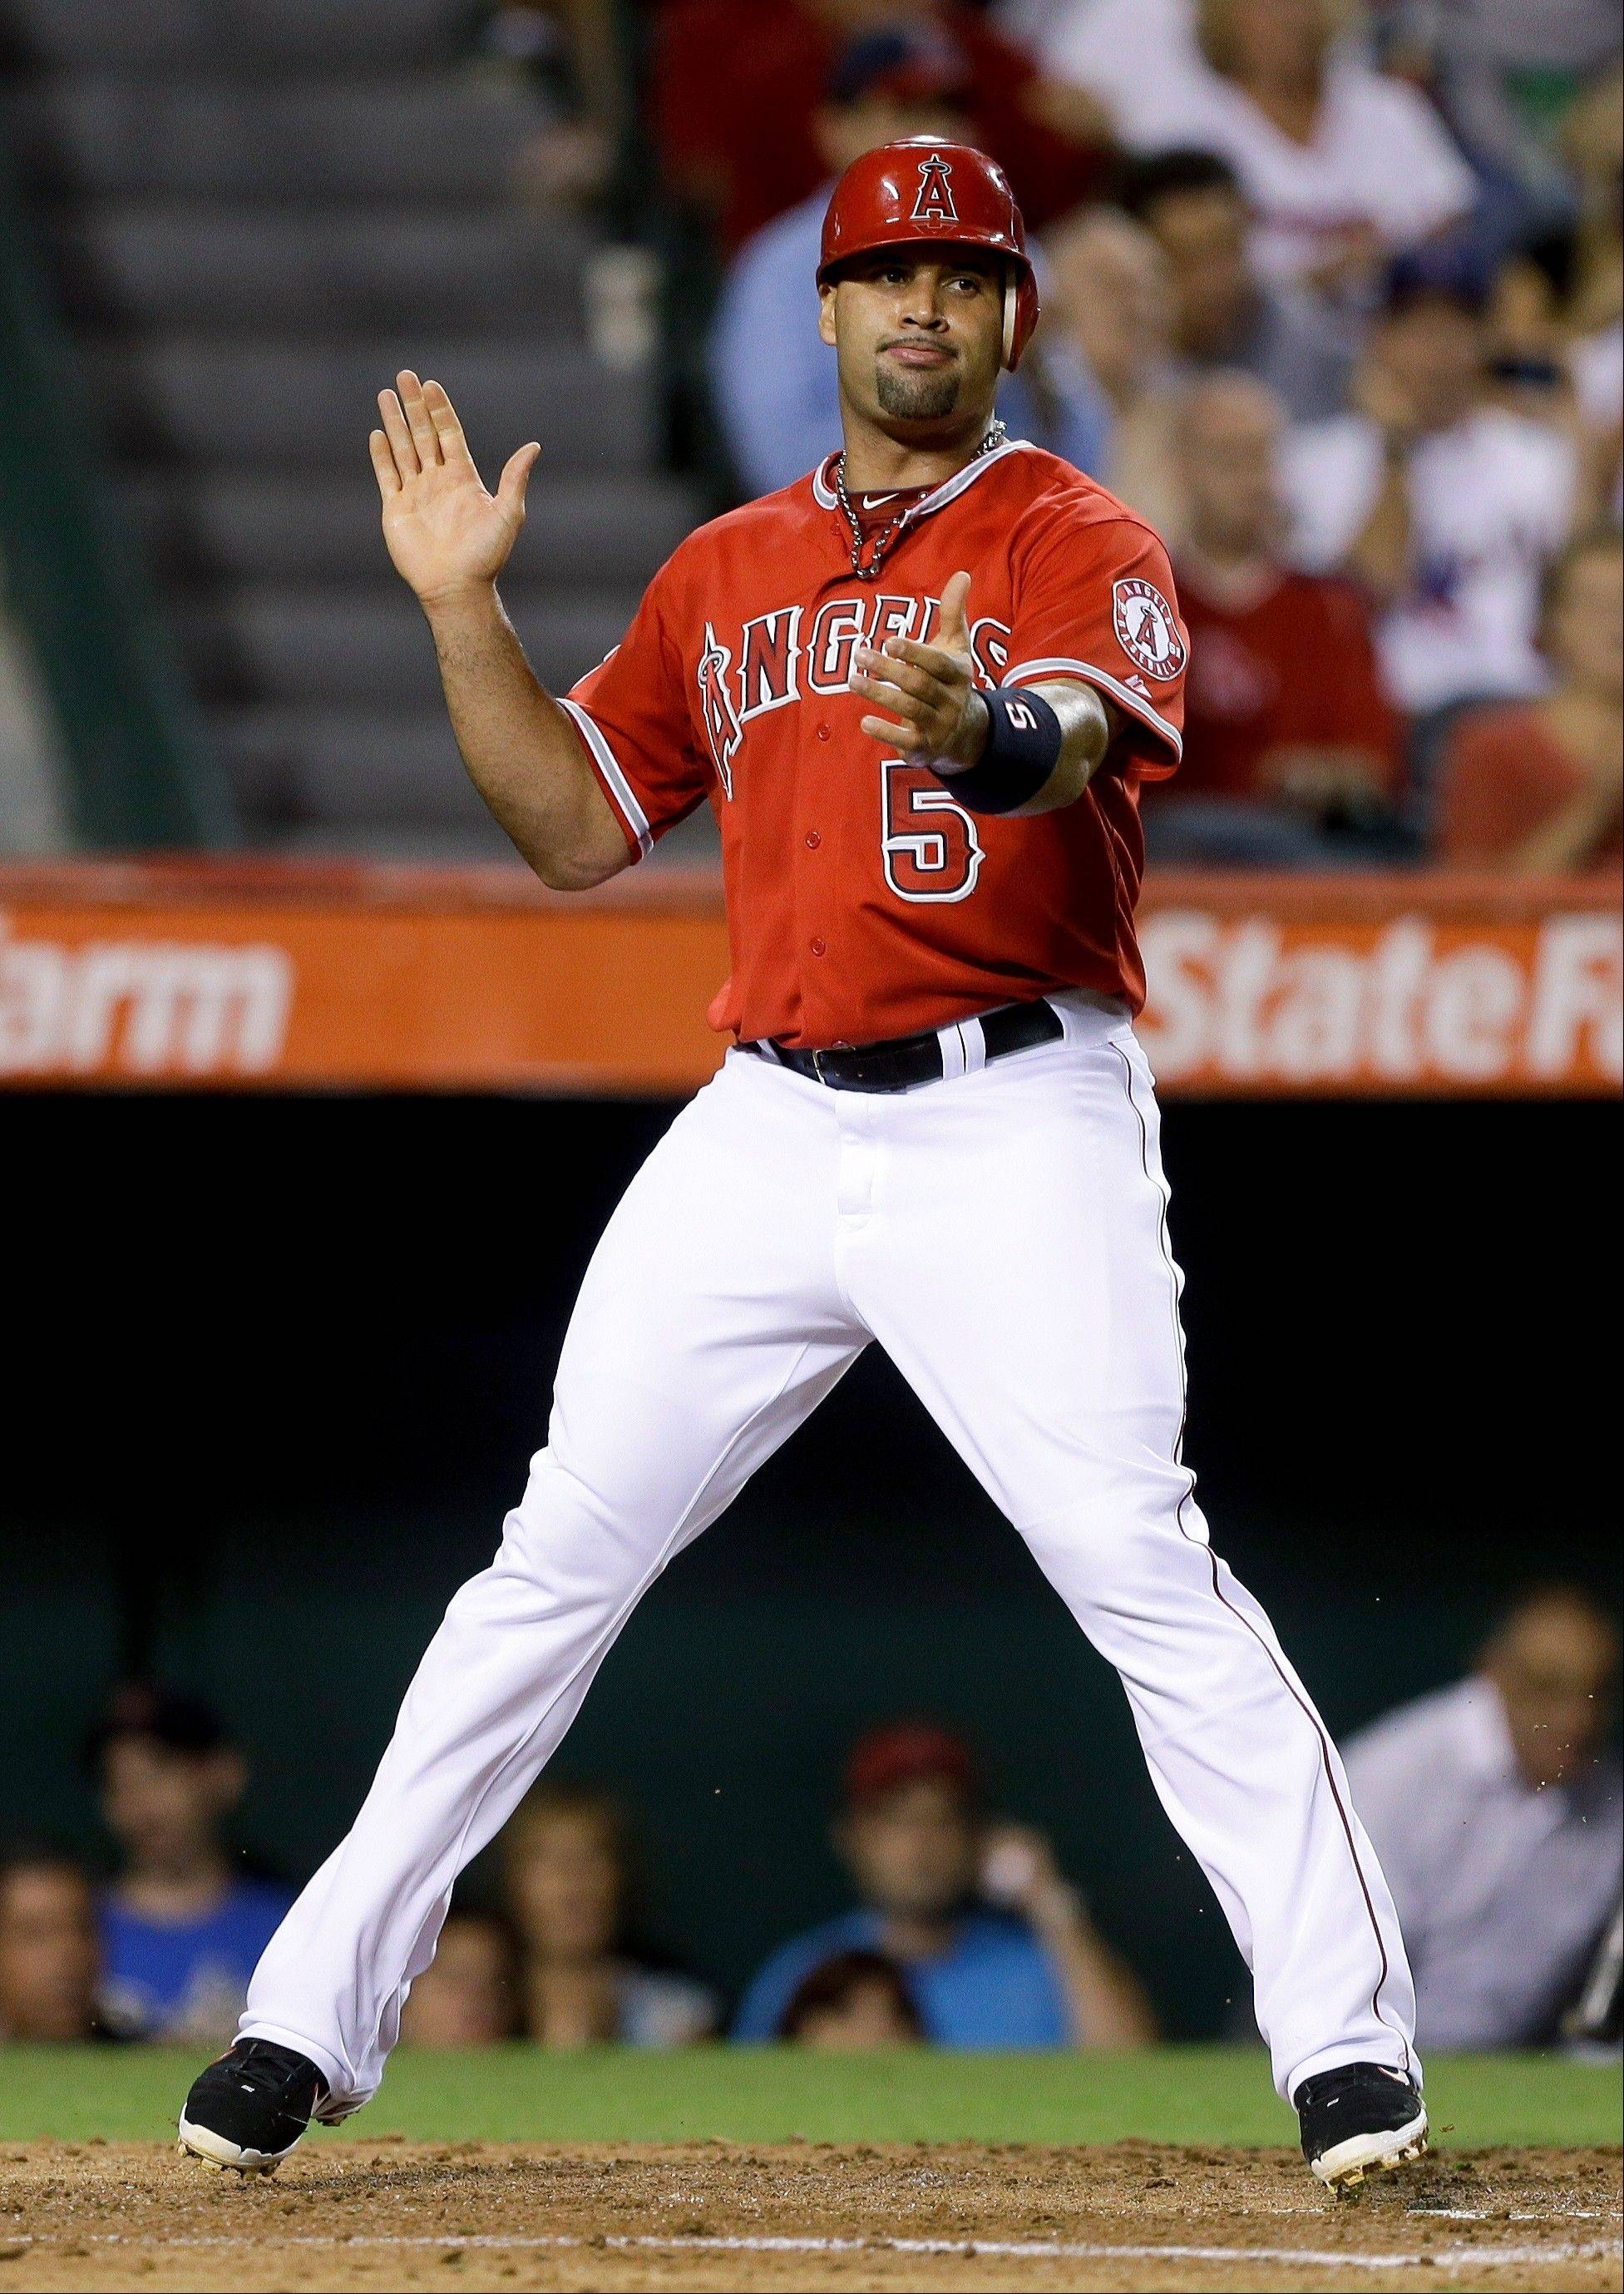 The Angels� Albert Pujols celebrates after scoring on a hit by Alberto Callaspo during the third inning against Boston on Thursday in Anaheim, Calif.